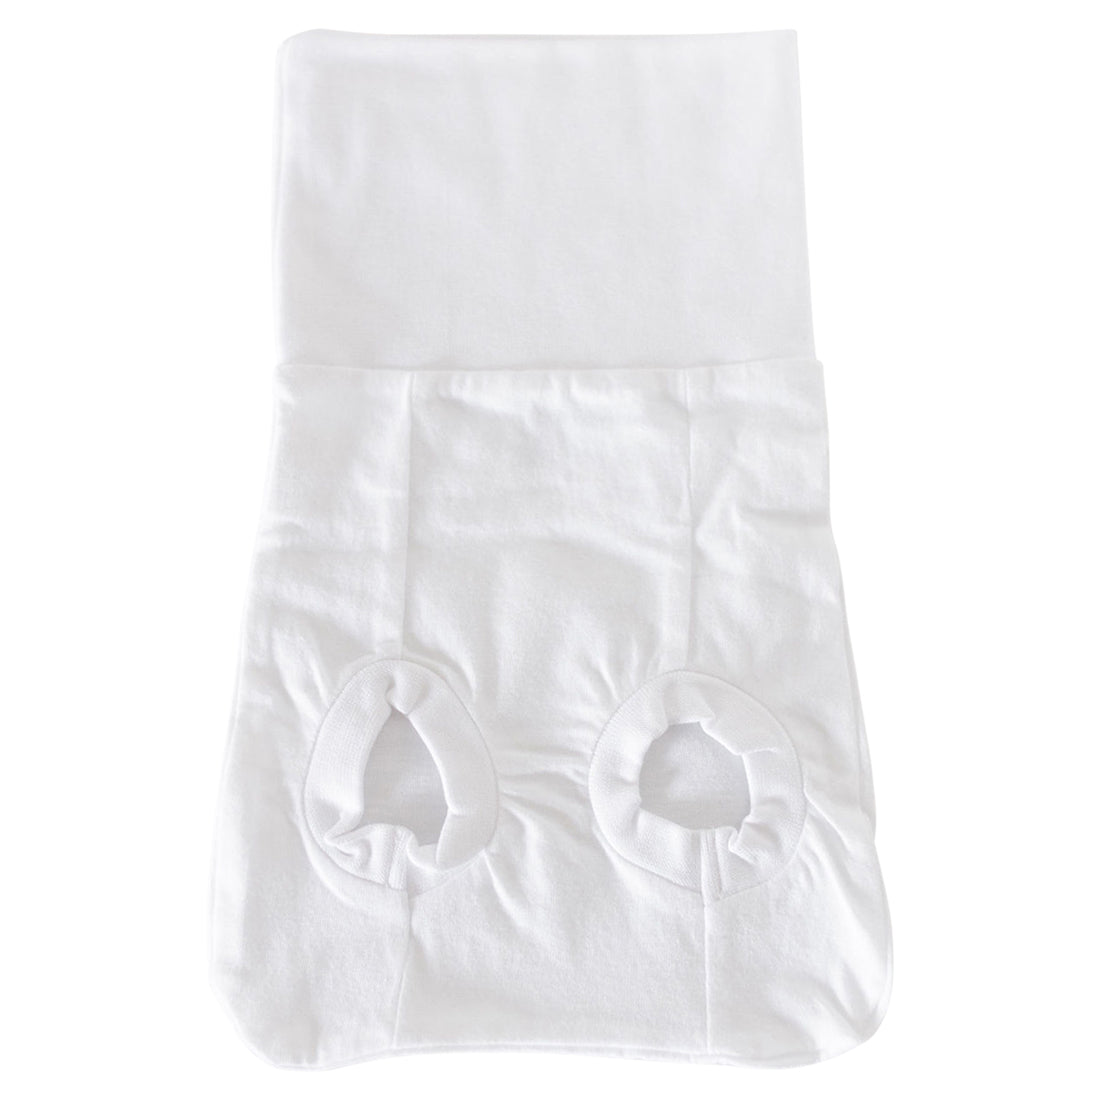 product photo of white organic cotton memeeno baby belly bloomer